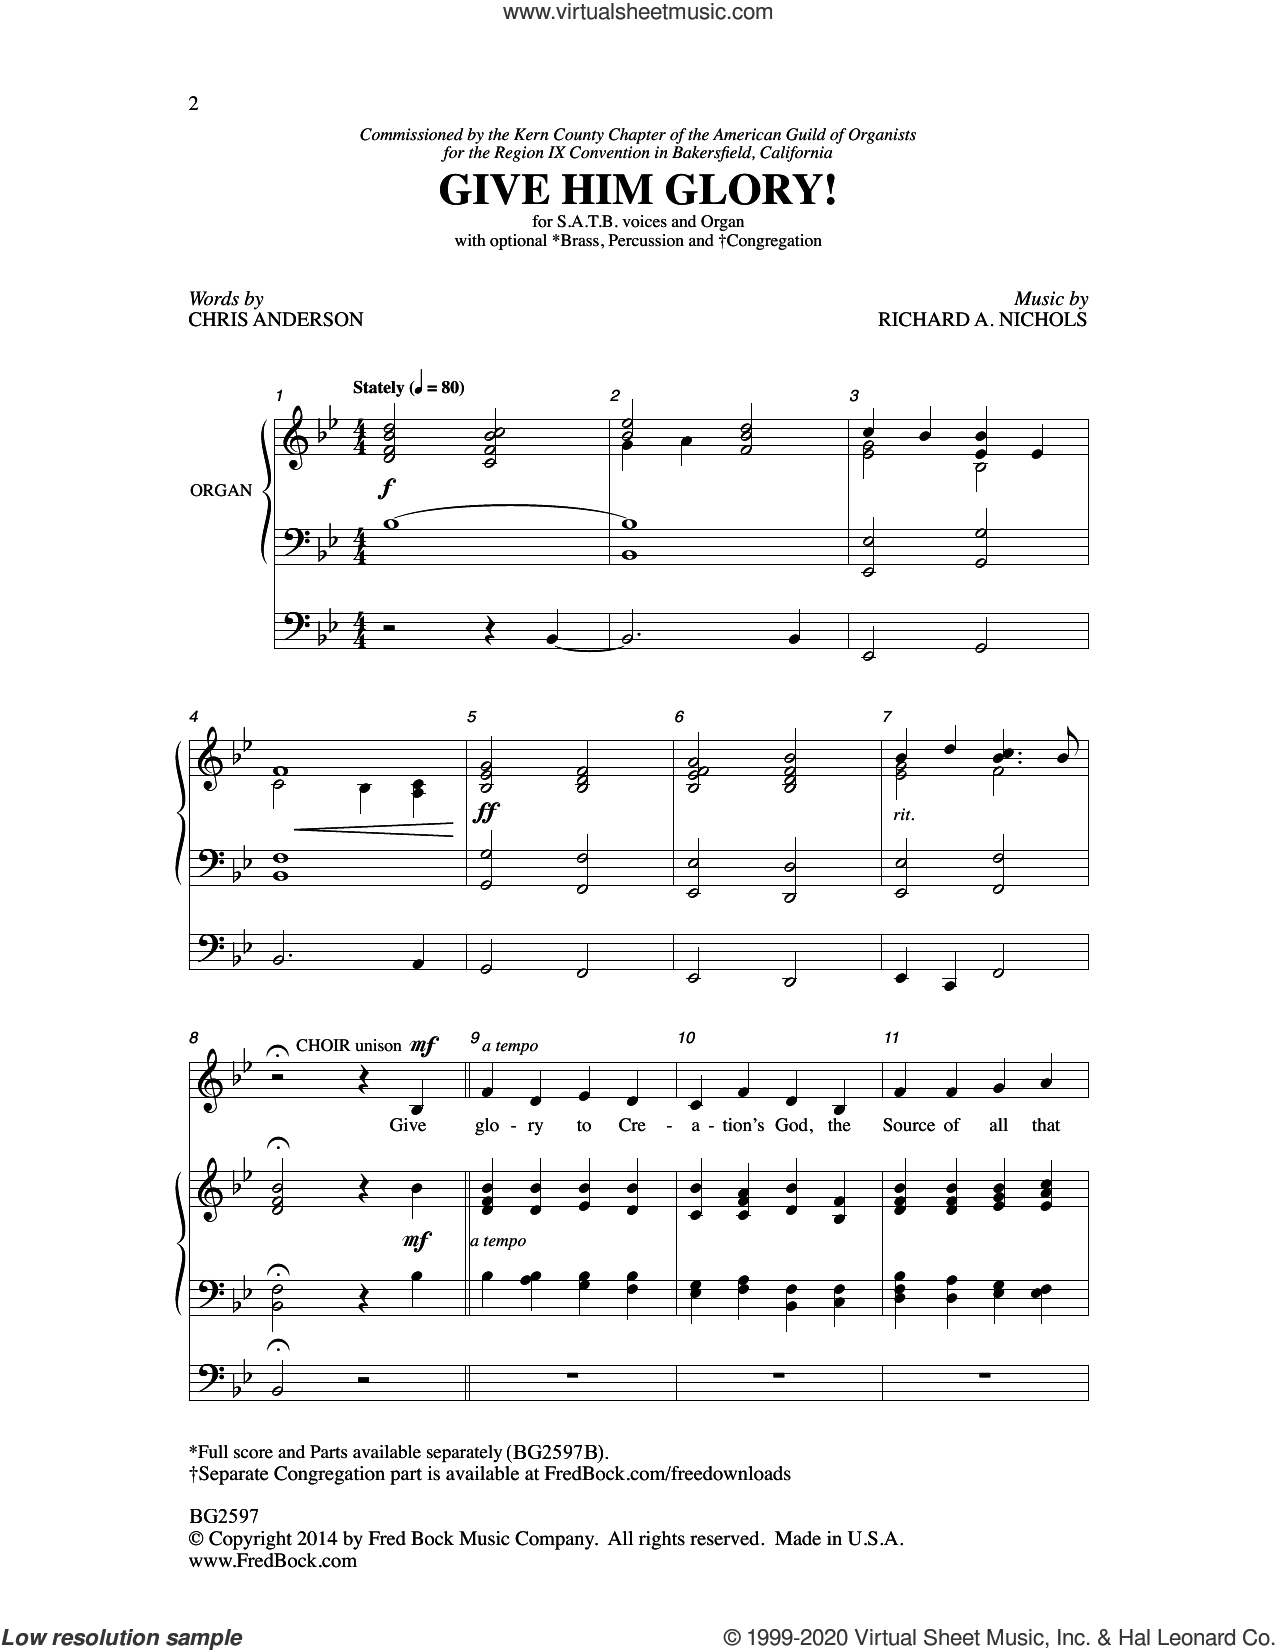 Give Him Glory! sheet music for choir by Richard A. Nichols and Chris Anderson, intermediate skill level